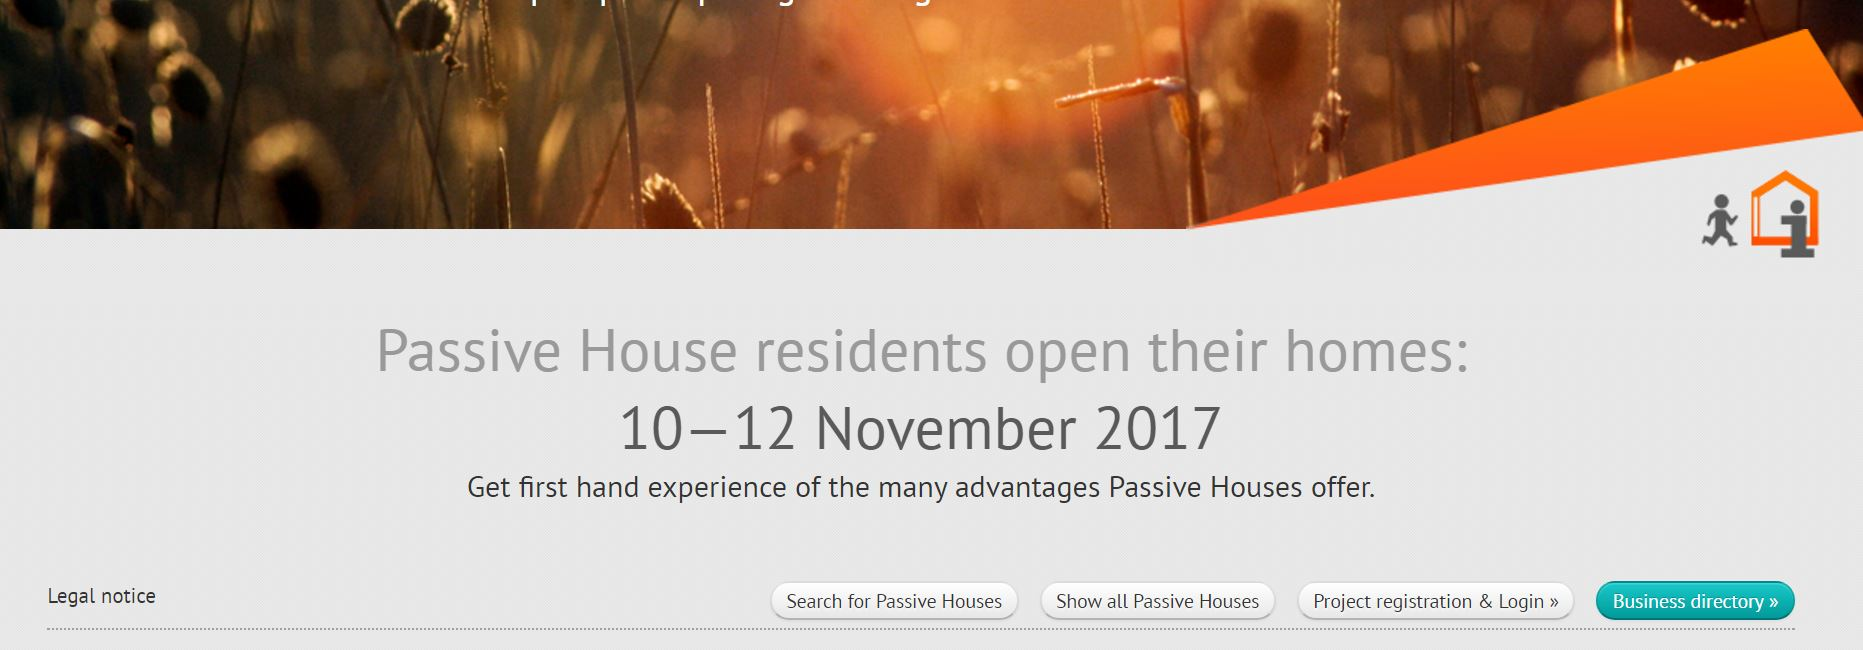 International Passivhaus Open Days 2017